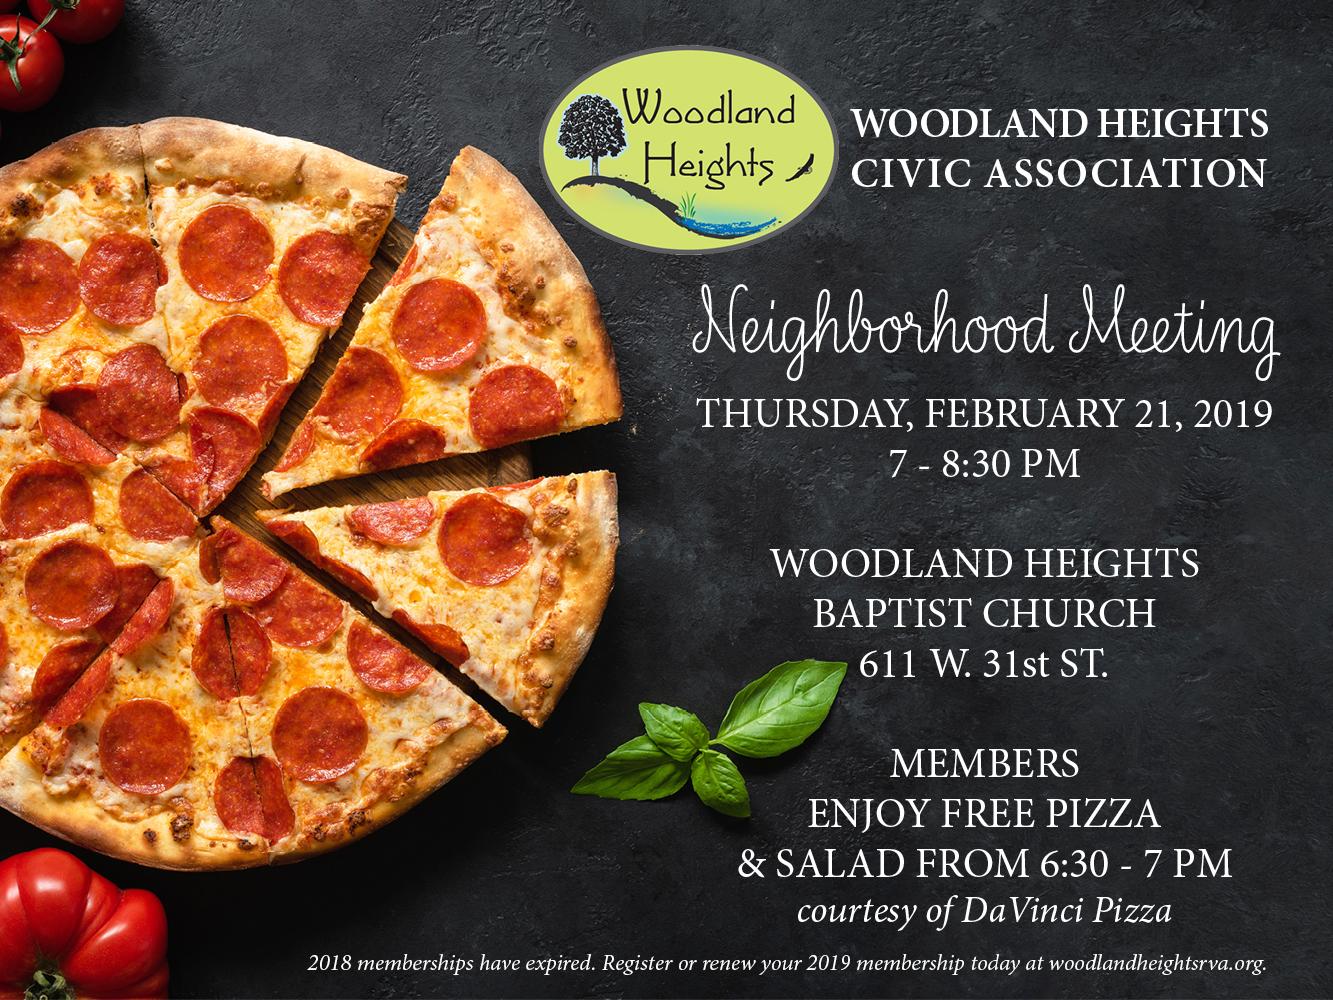 Woodland Heights Civic Association February 21, 2019 Neighborhood Meeting Details